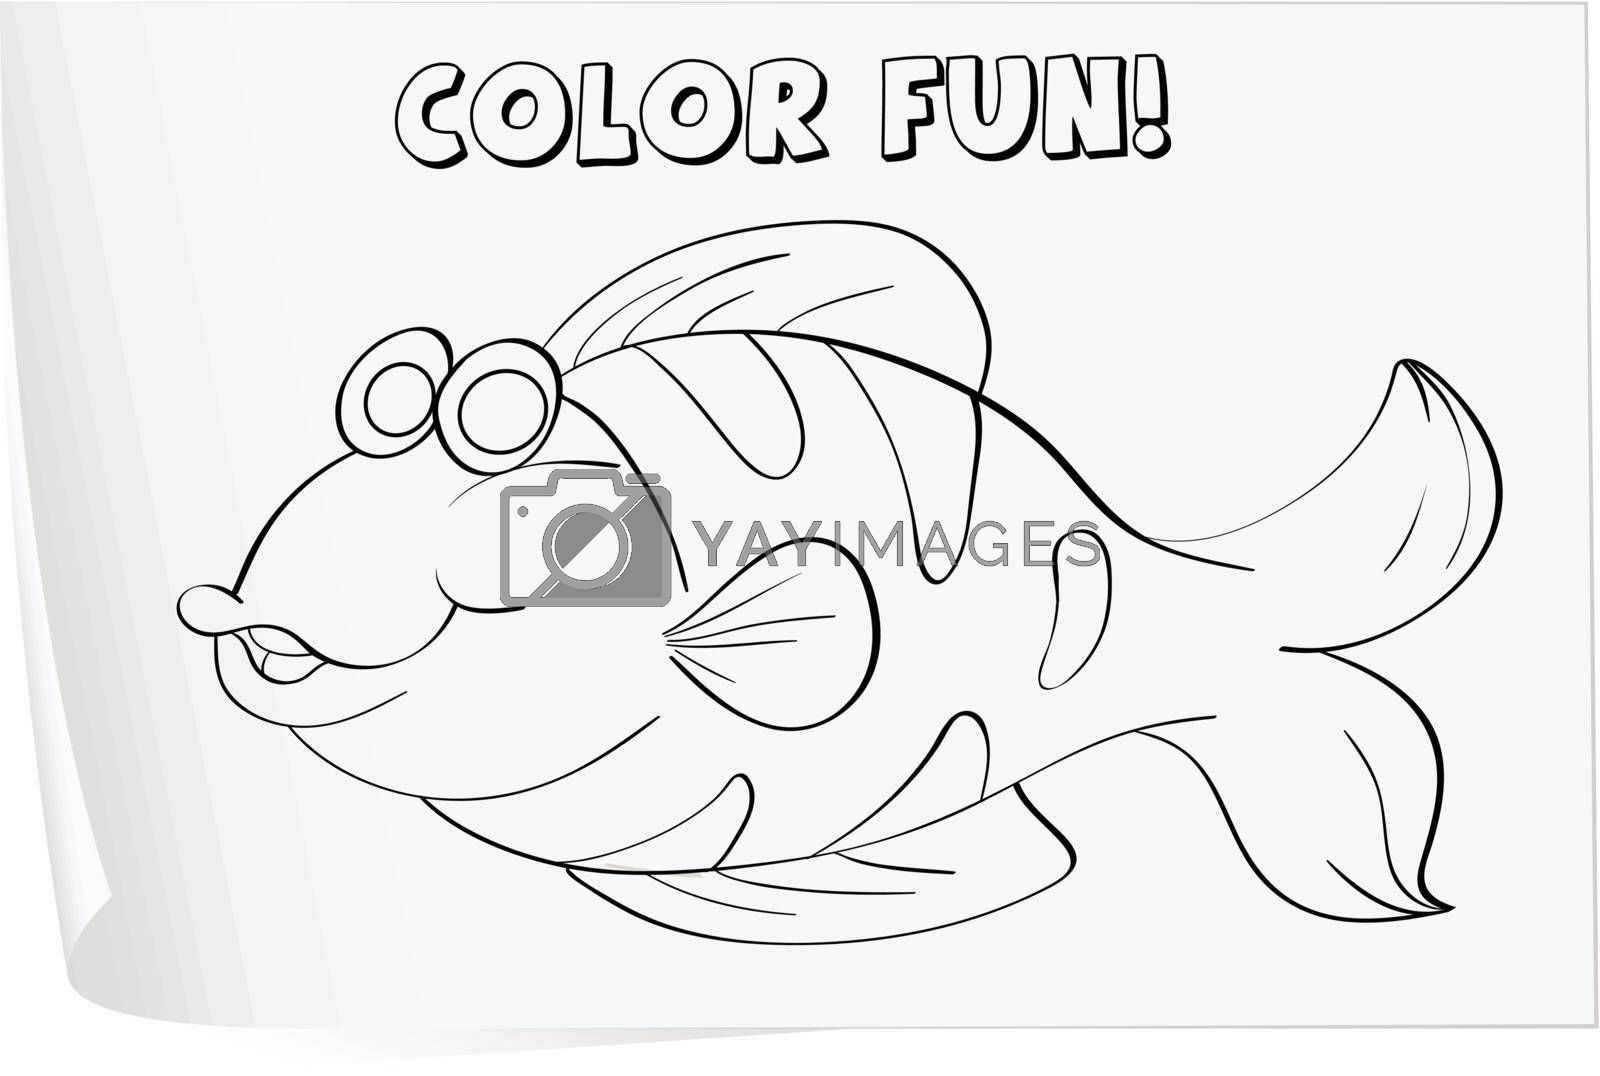 Colour worksheet of a fish (fish)